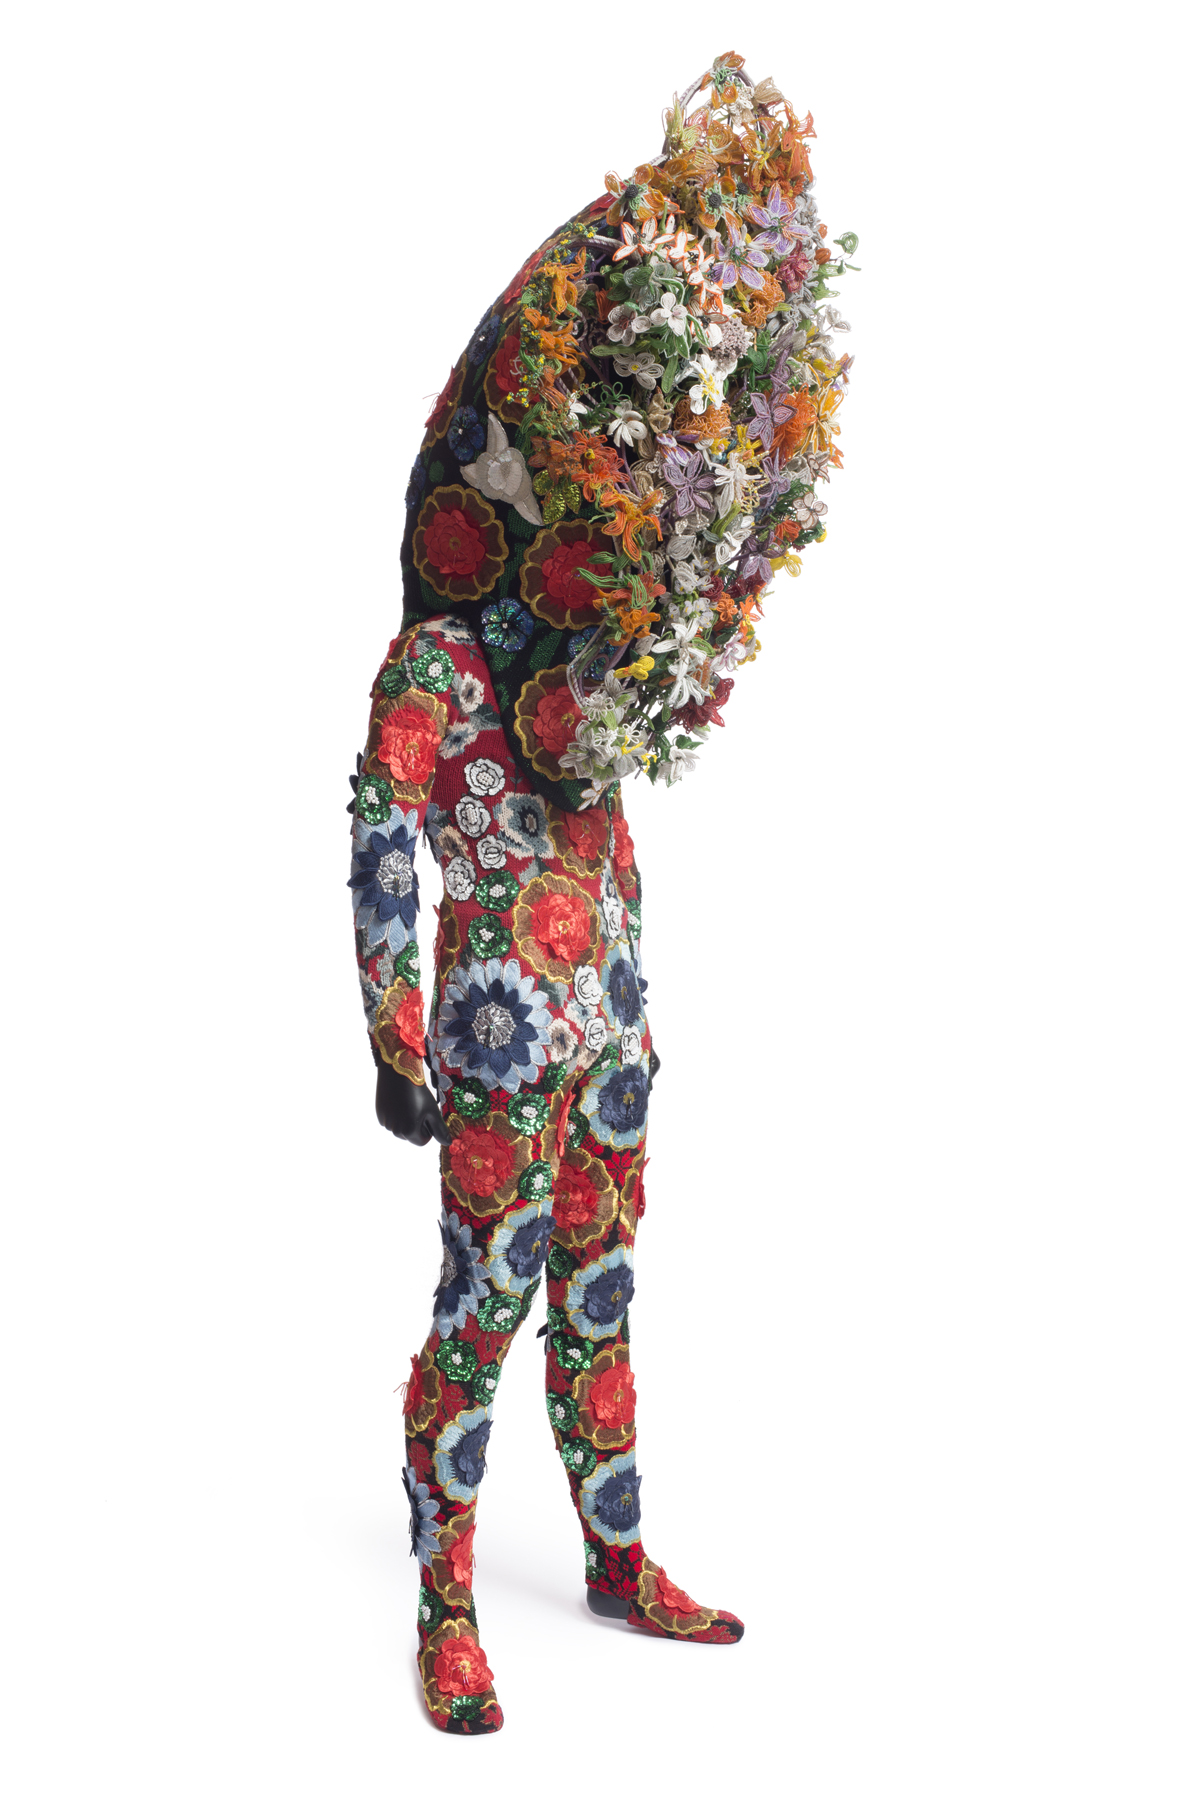 Soundsuit made of mixed media including sequins and beads, 2006-2012. (Courtesy of Nick Cave and Jack Shainman Gallery, New York. Photo by James Prinz Photography.)